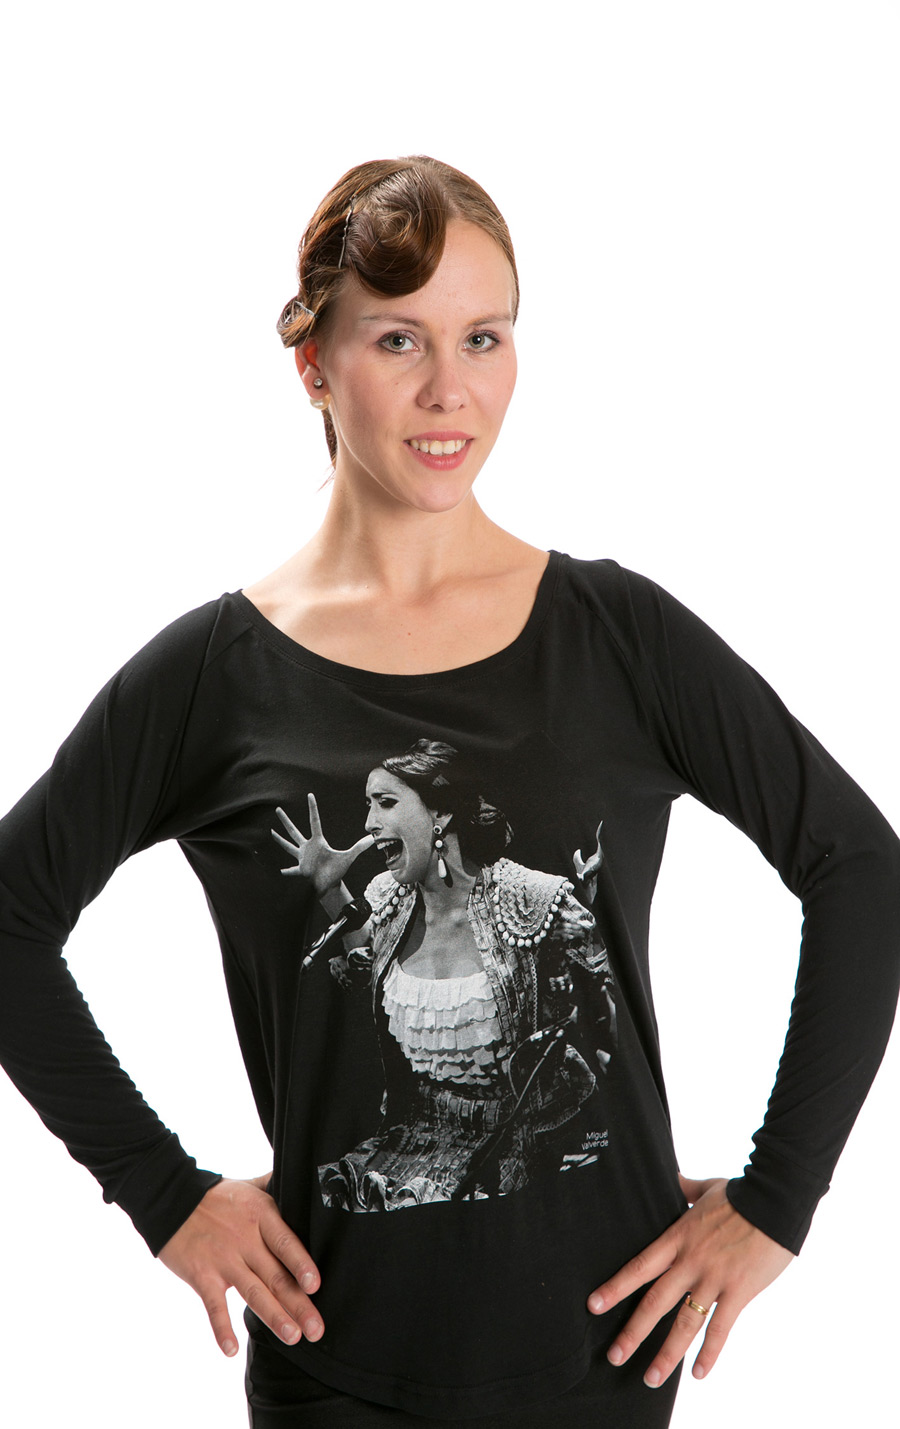 LIMITED EDITION T-SHIRT MODEL FLAMENCO SINGER. BEGOÑA CERVERA